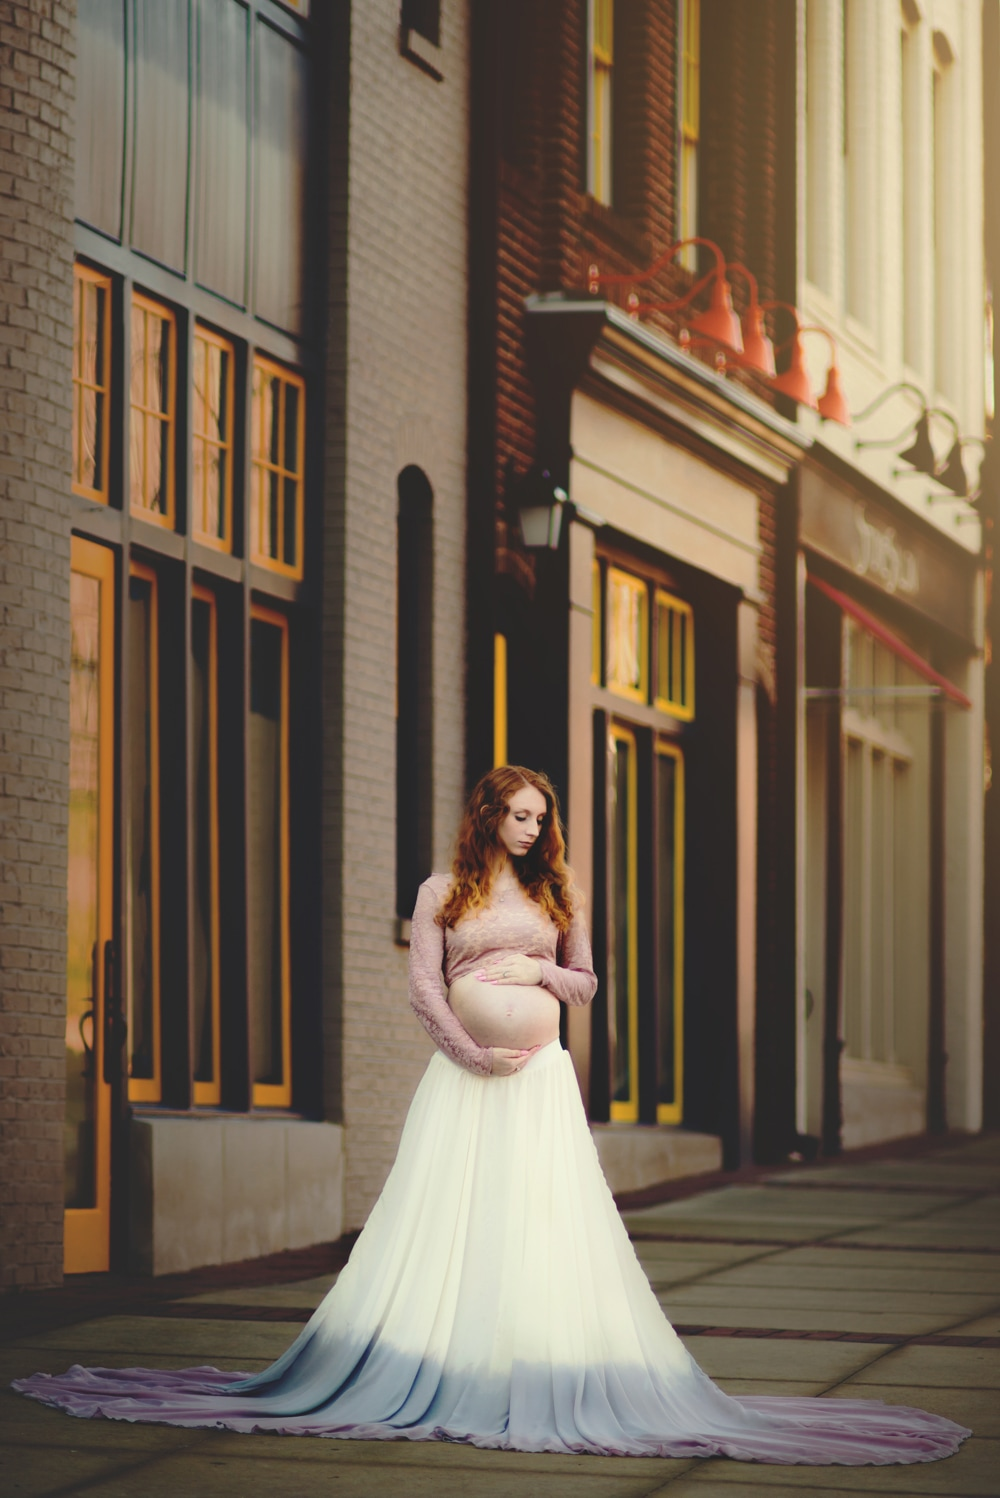 Douglasville, Georgia Maternity Photographer | Maternity Photography in Atlanta, GA